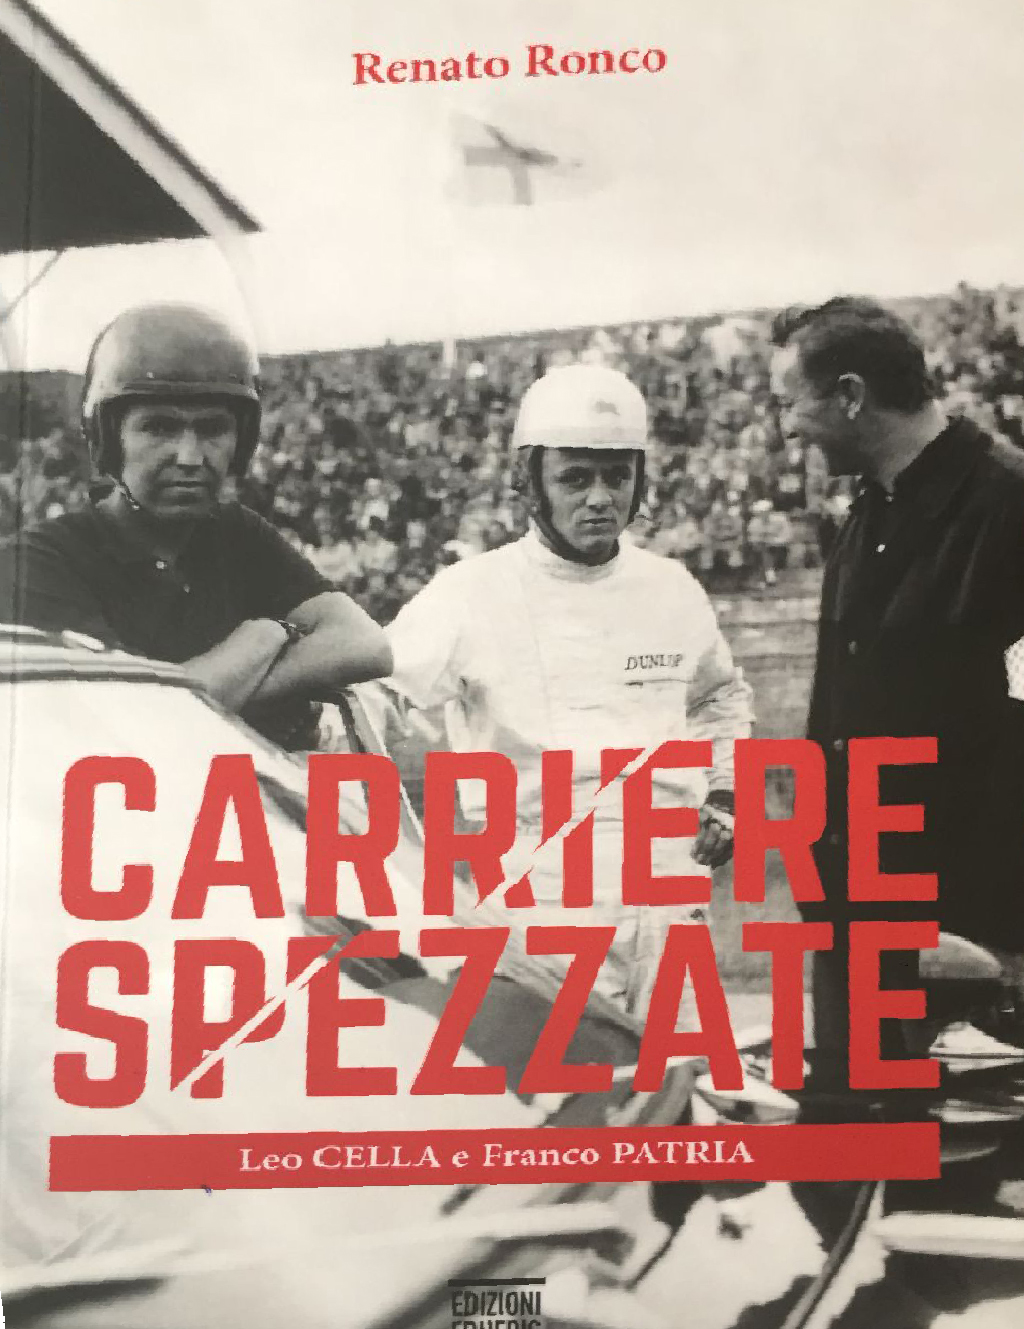 Carriere-spezzate